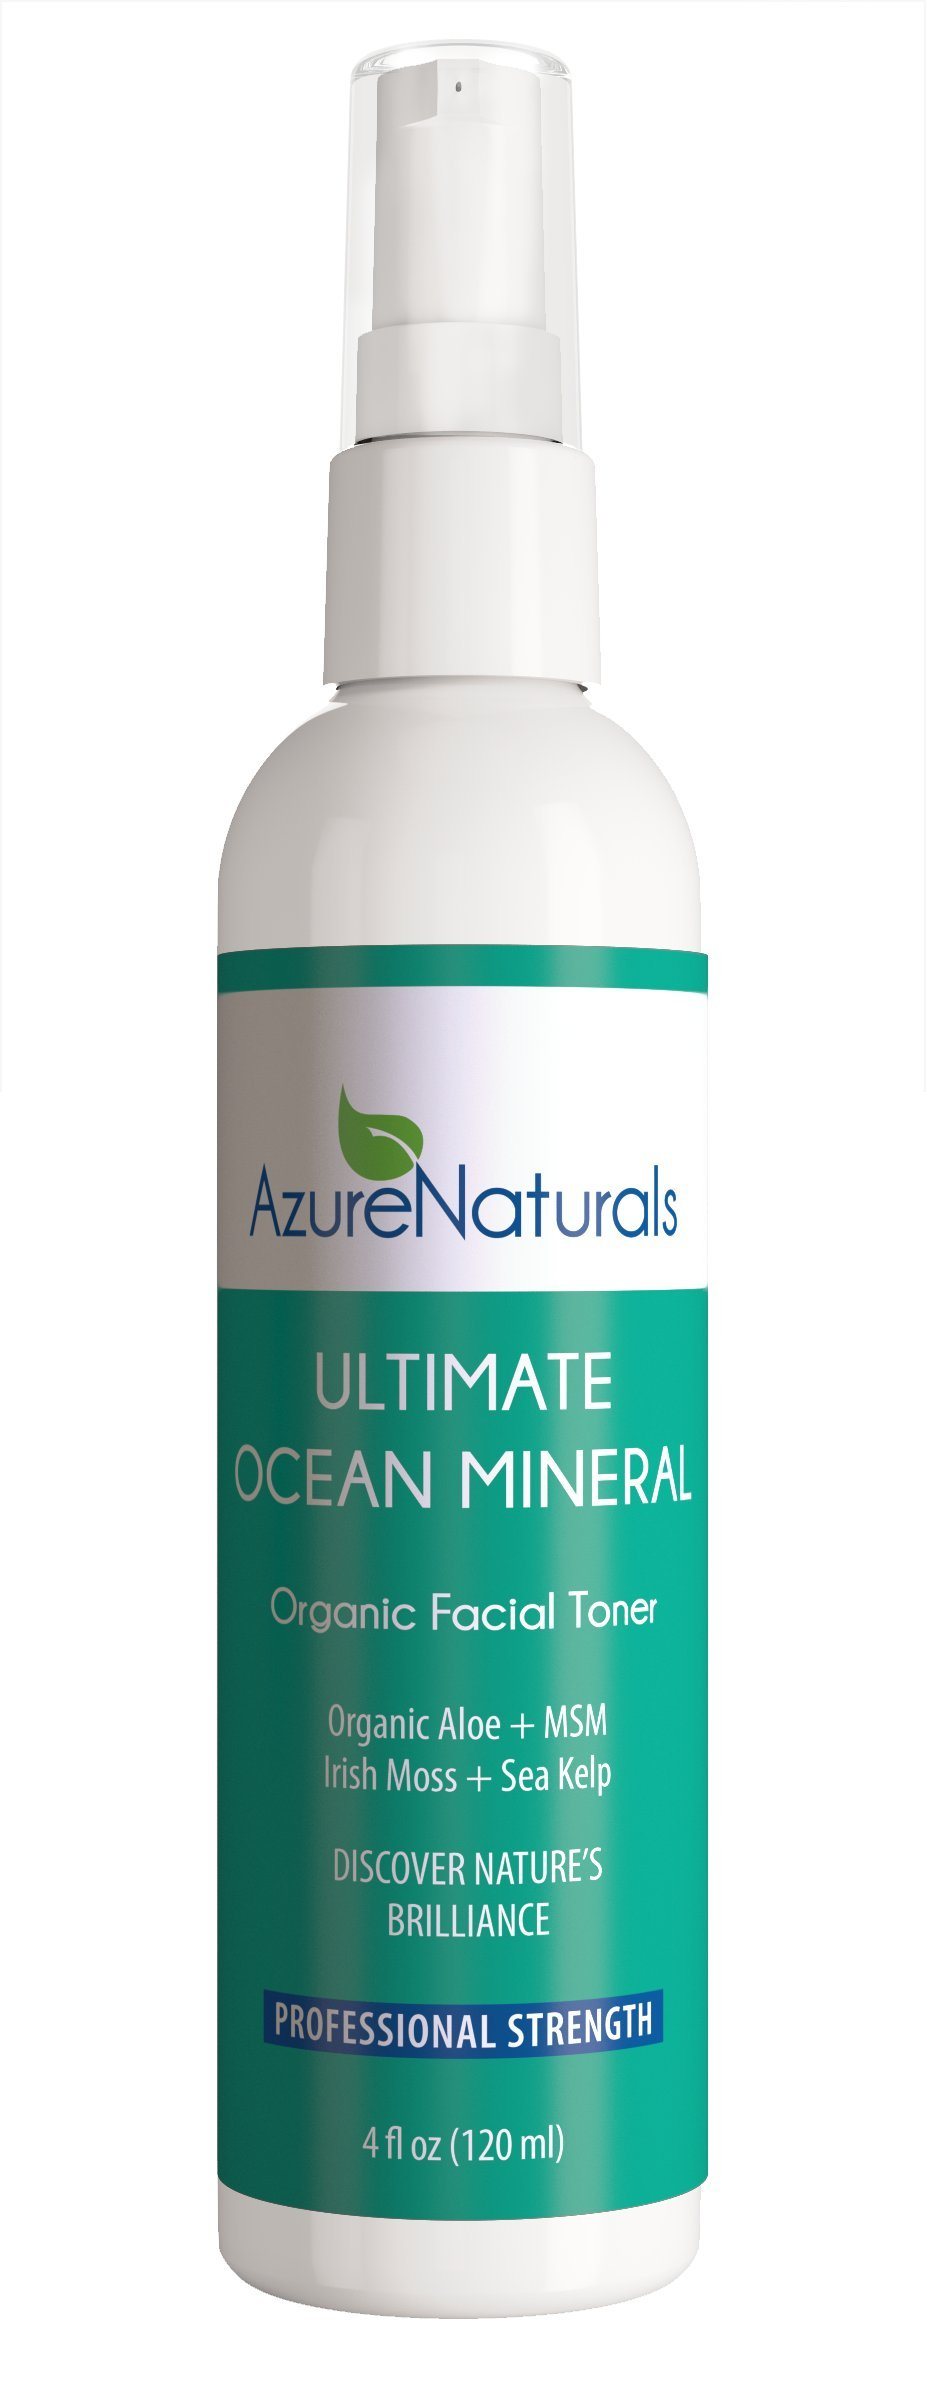 ULTIMATE OCEAN Mineral Organic Facial Toner, 90+ Ocean Minerals, Blue Green Algae + Irish Moss + Kelp Will Brighten & Hydrate Your Skin Giving You a Beautiful, Youthful Looking Glow!